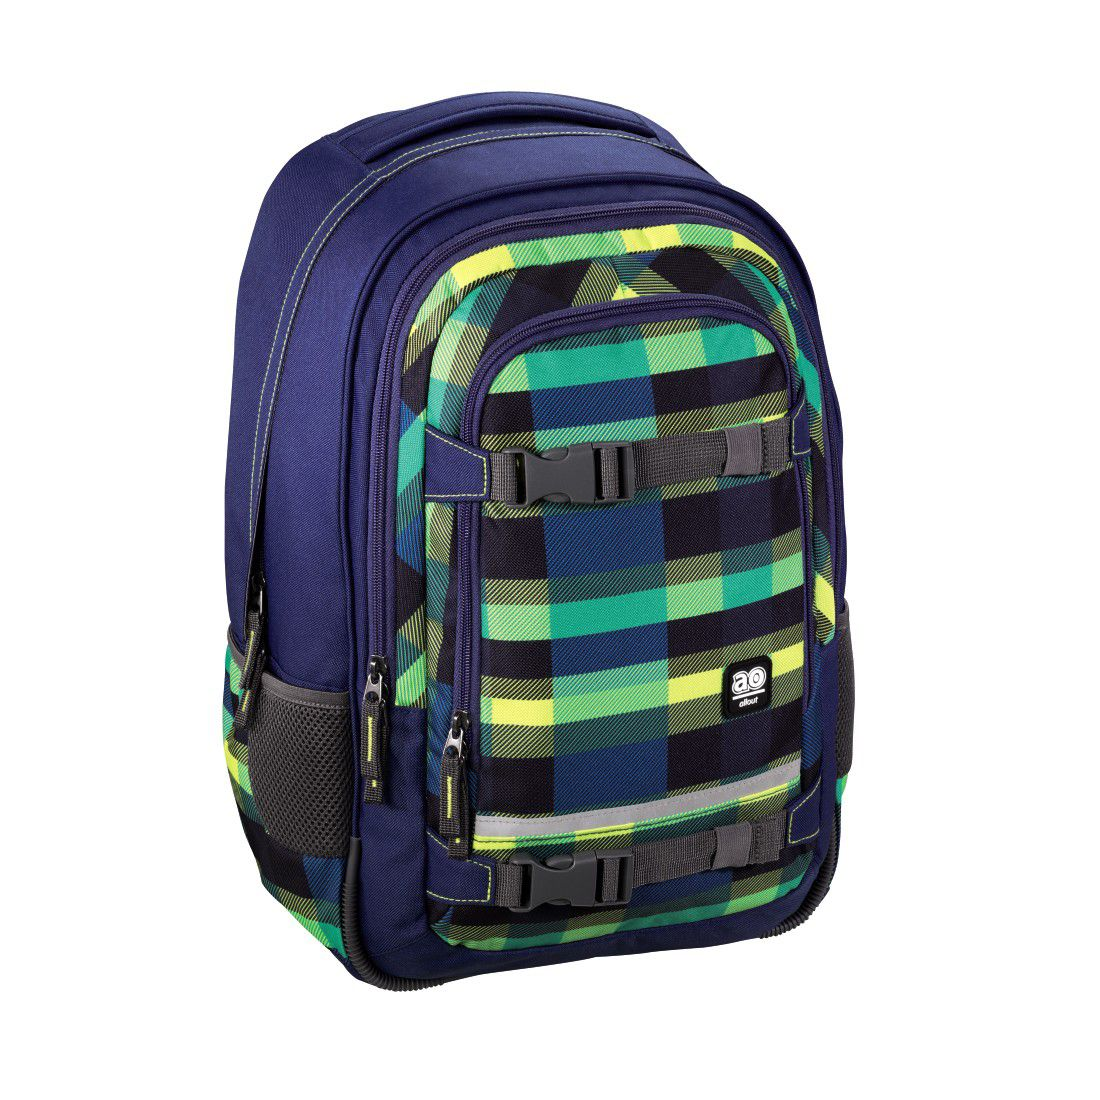 ALL OUT All Out Rucksack Selby, Summer Check Green